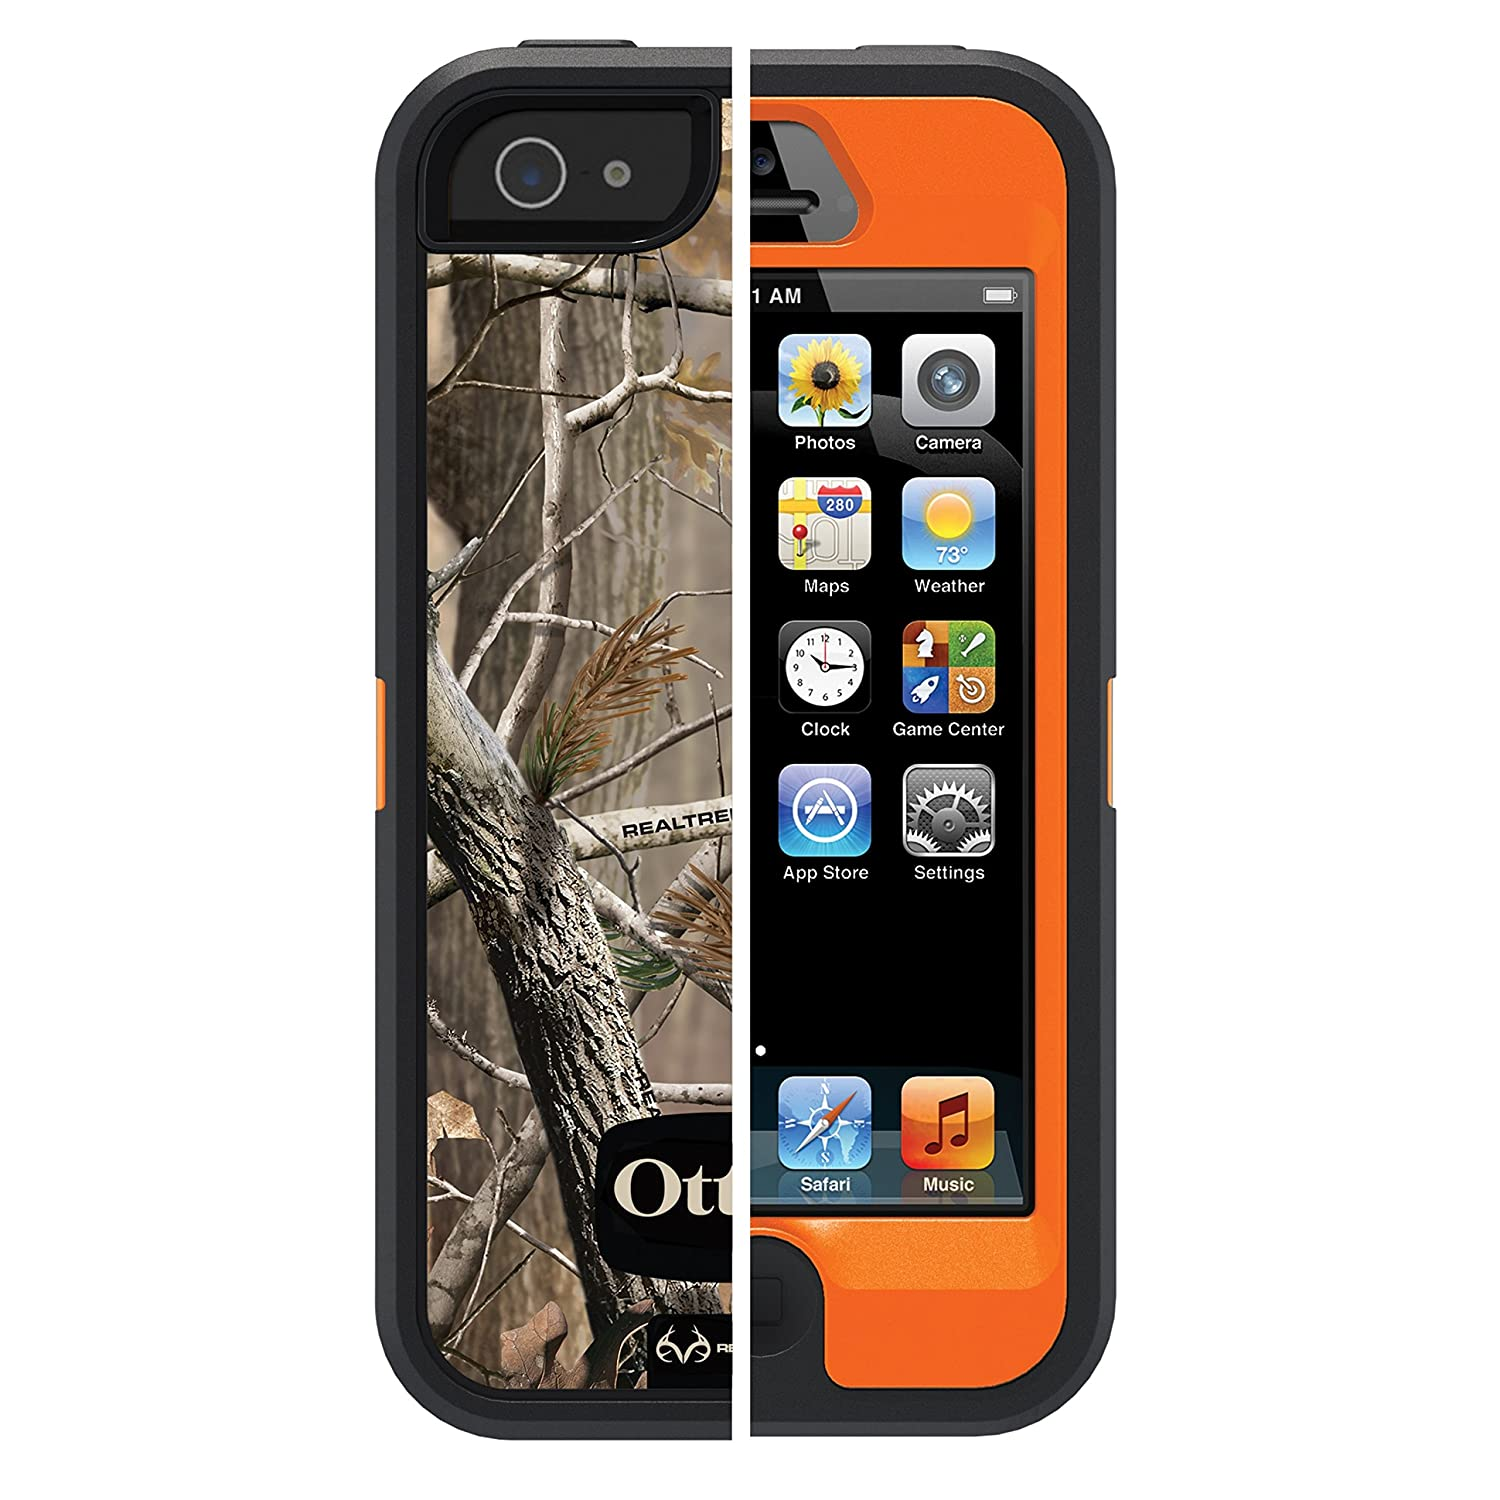 Amazon.com: Otterbox Defender Replacement Case - Blazed - for ...